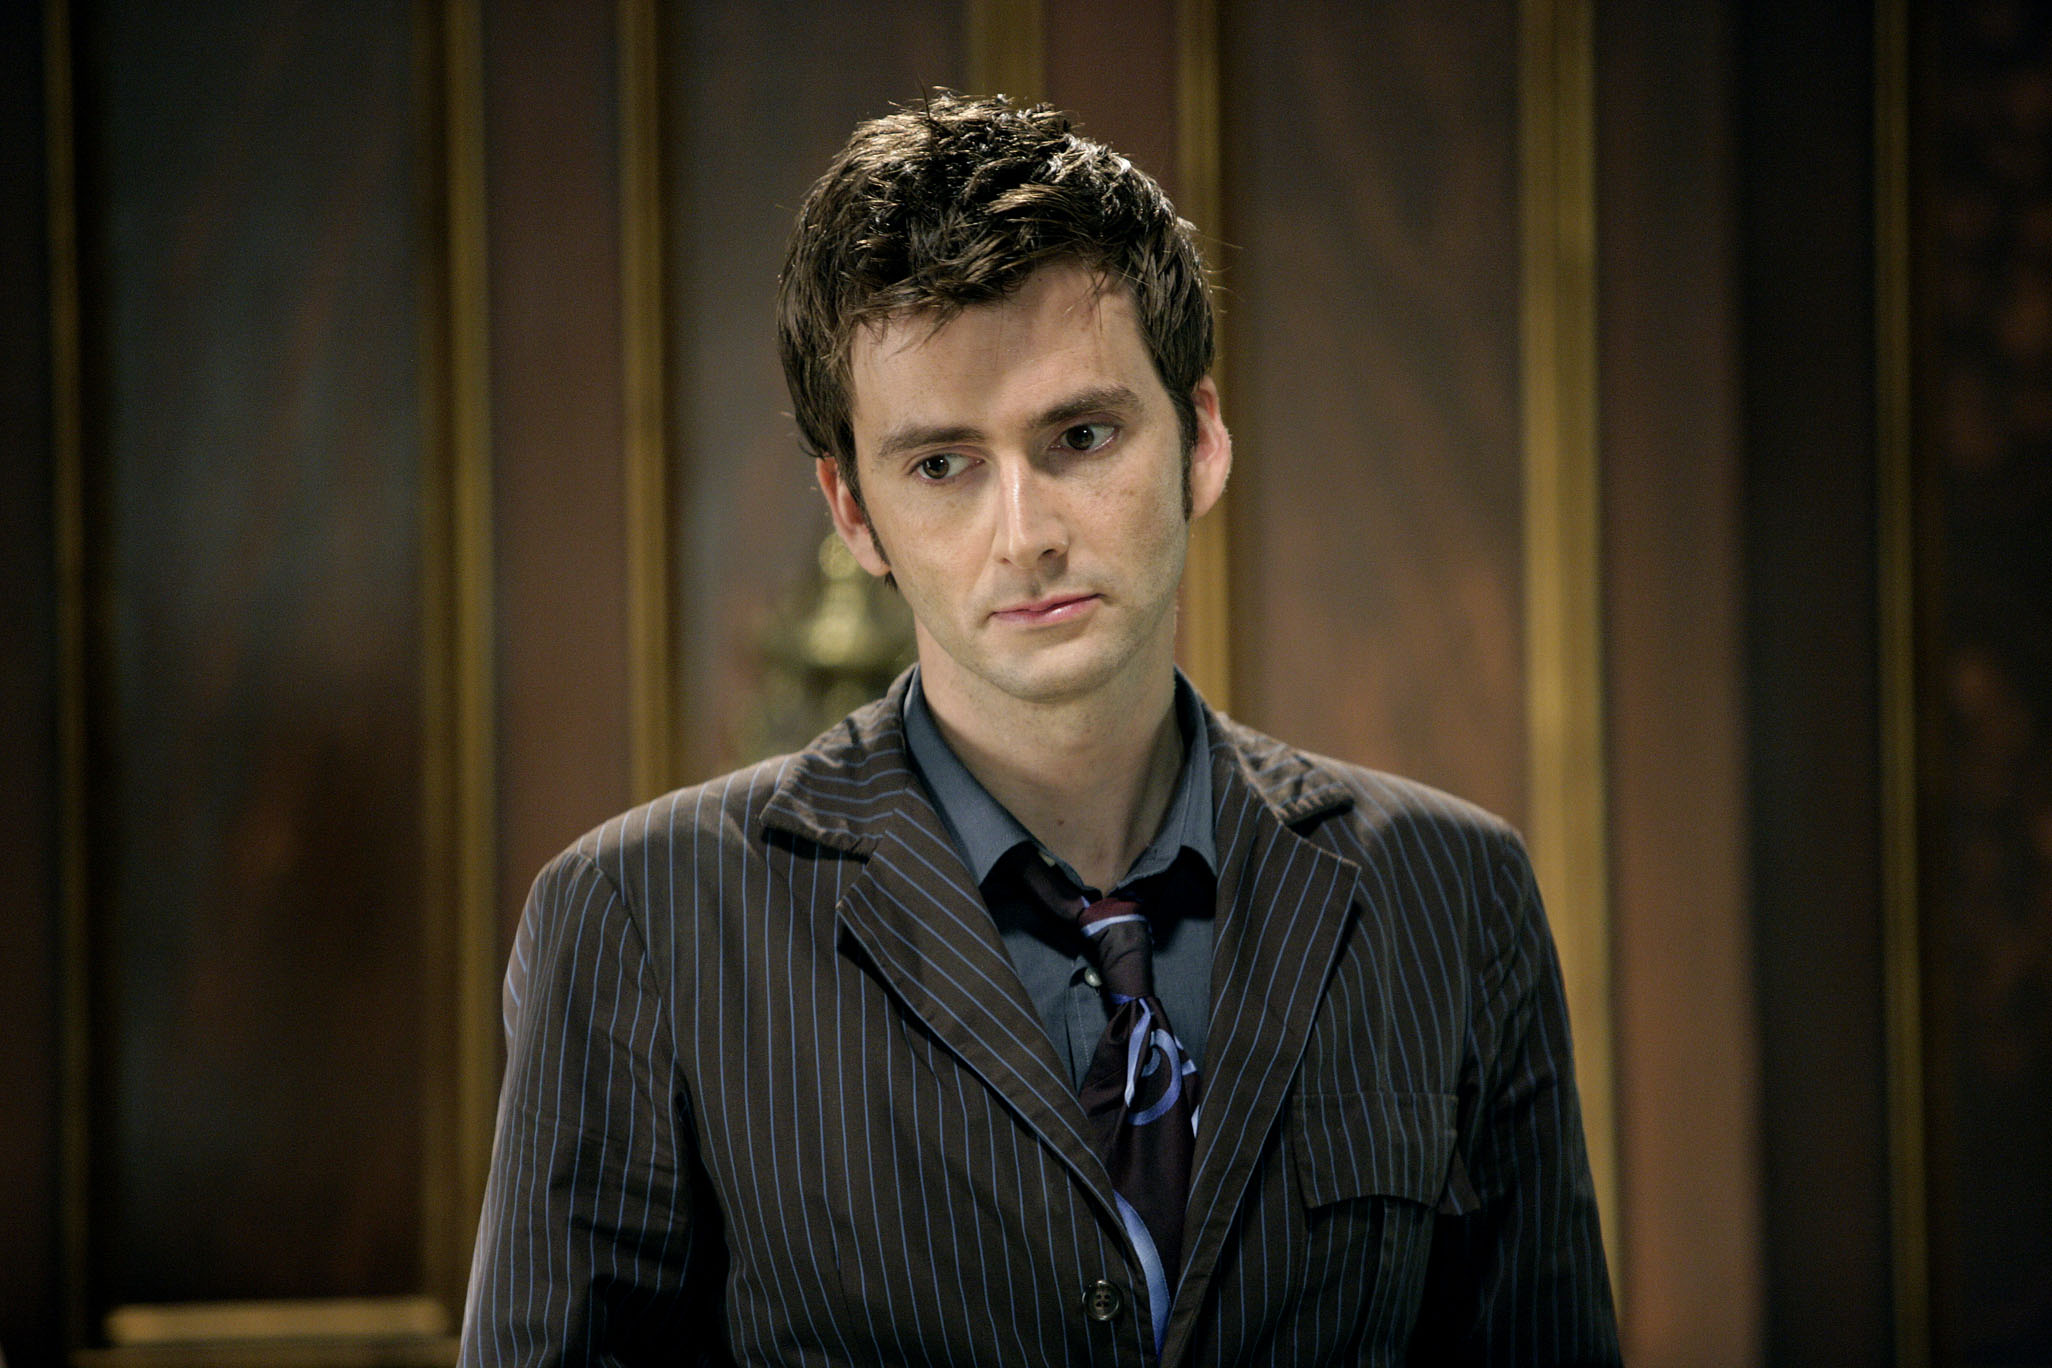 The role that began the world's love affair with David Tennant. Taking over from Christopher Eccleston was no easy feat, but the charismatic, hyperactive Tennant won over fans, becoming the most beloved Doctor since Tom Baker.